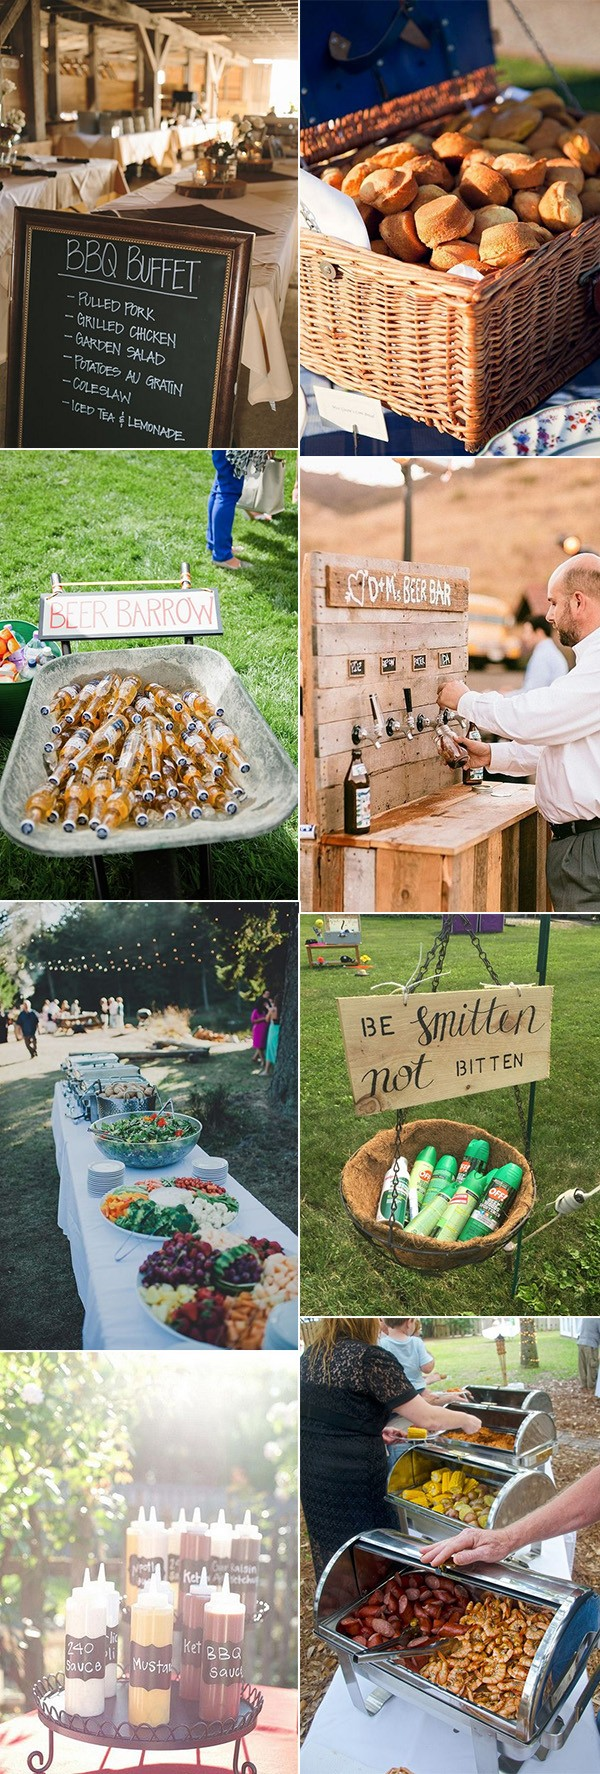 barbecue reception ideas for backyard weddings